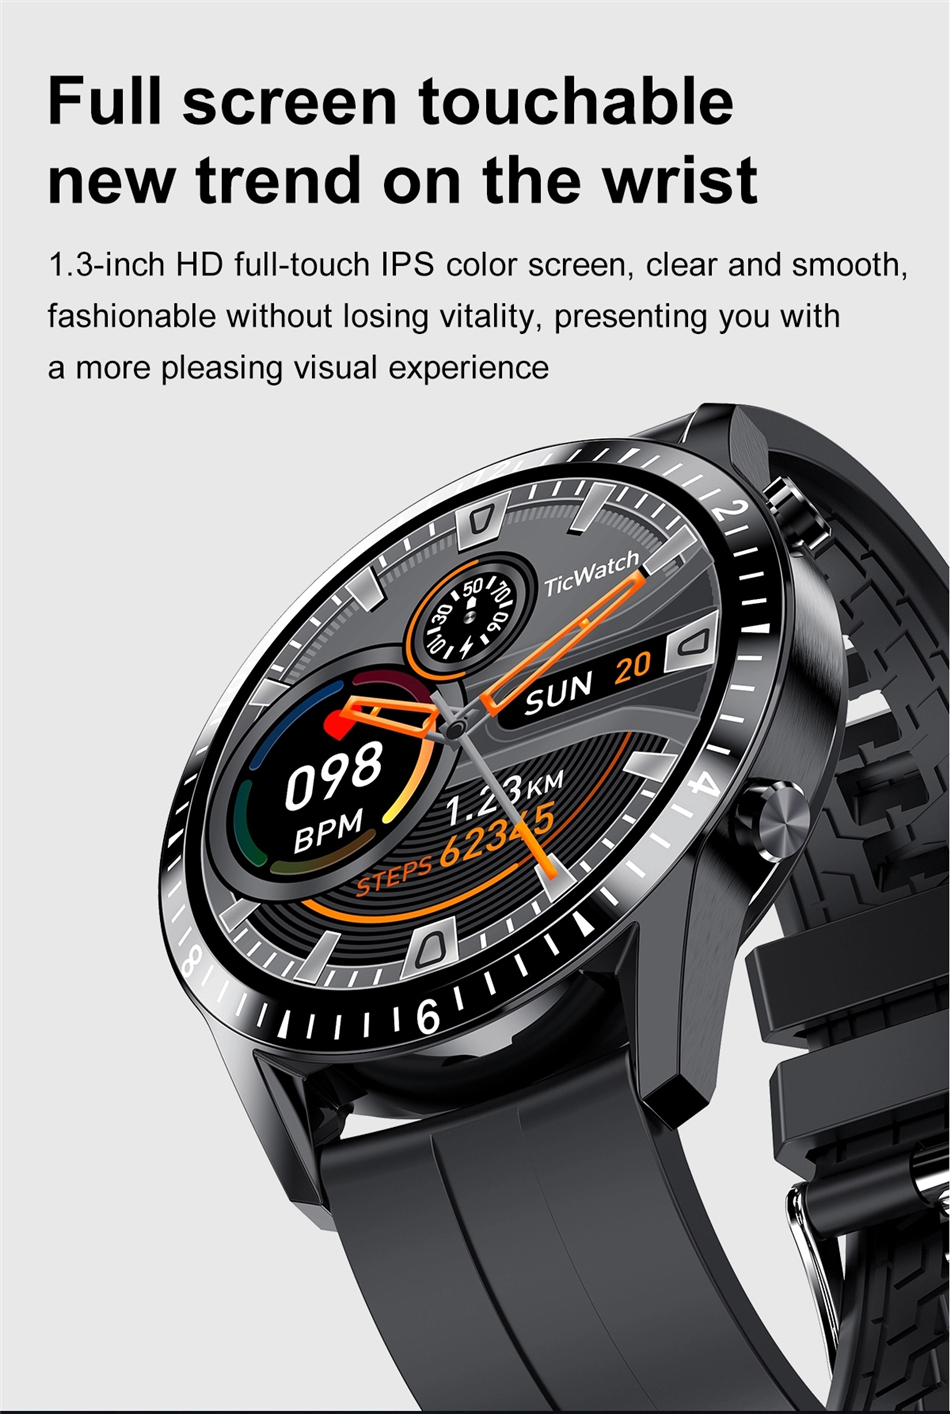 H5226daccd75a4b4ca689f8a8bbab1ba17 2021 Smart Watch Phone Full Touch Screen Sport Fitness Watch IP68 Waterproof Bluetooth Connection For Android ios smartwatch Men